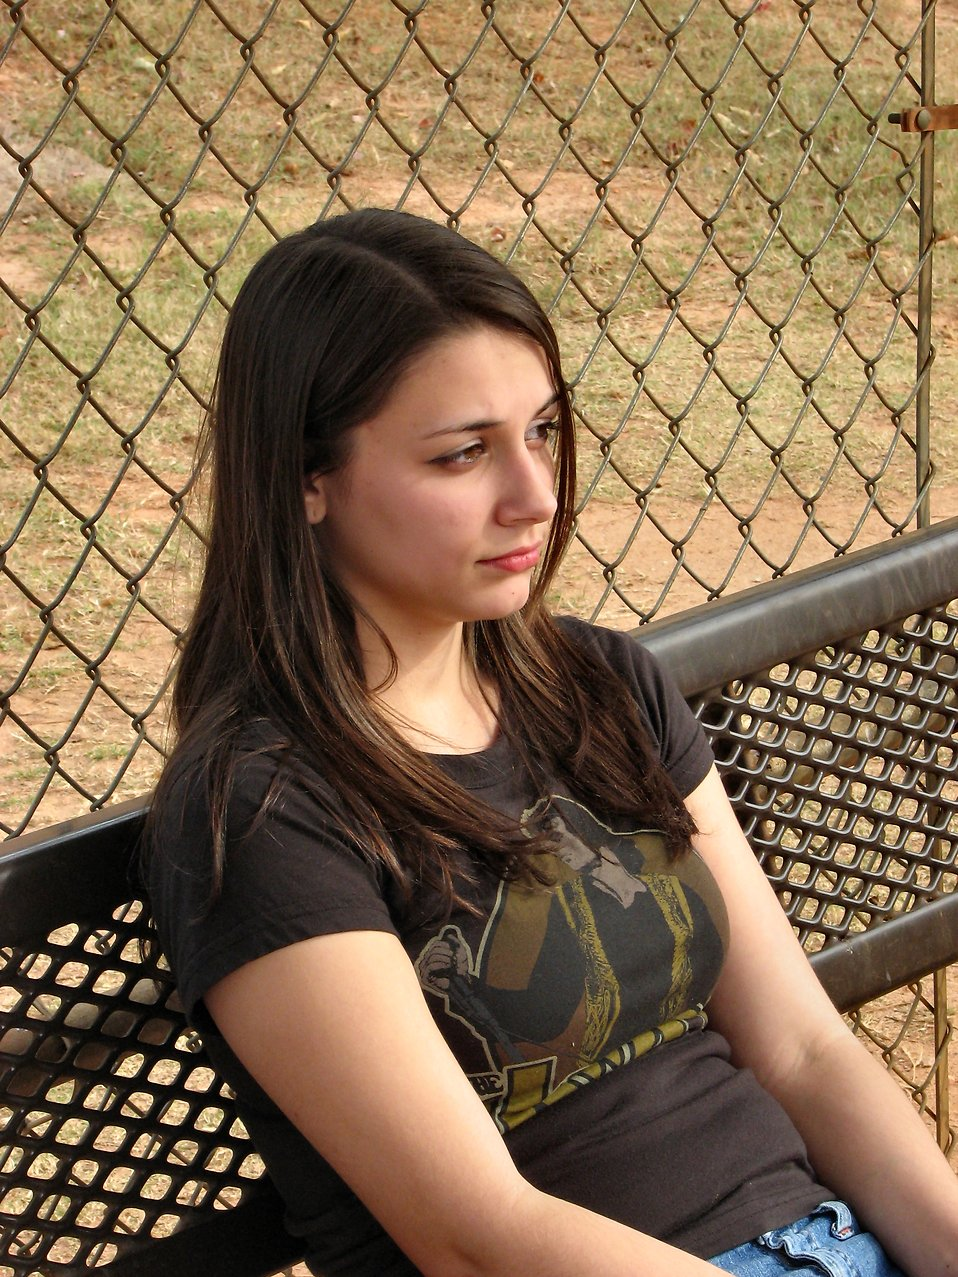 A teenage girl sitting on a bench outside : Free Stock Photo